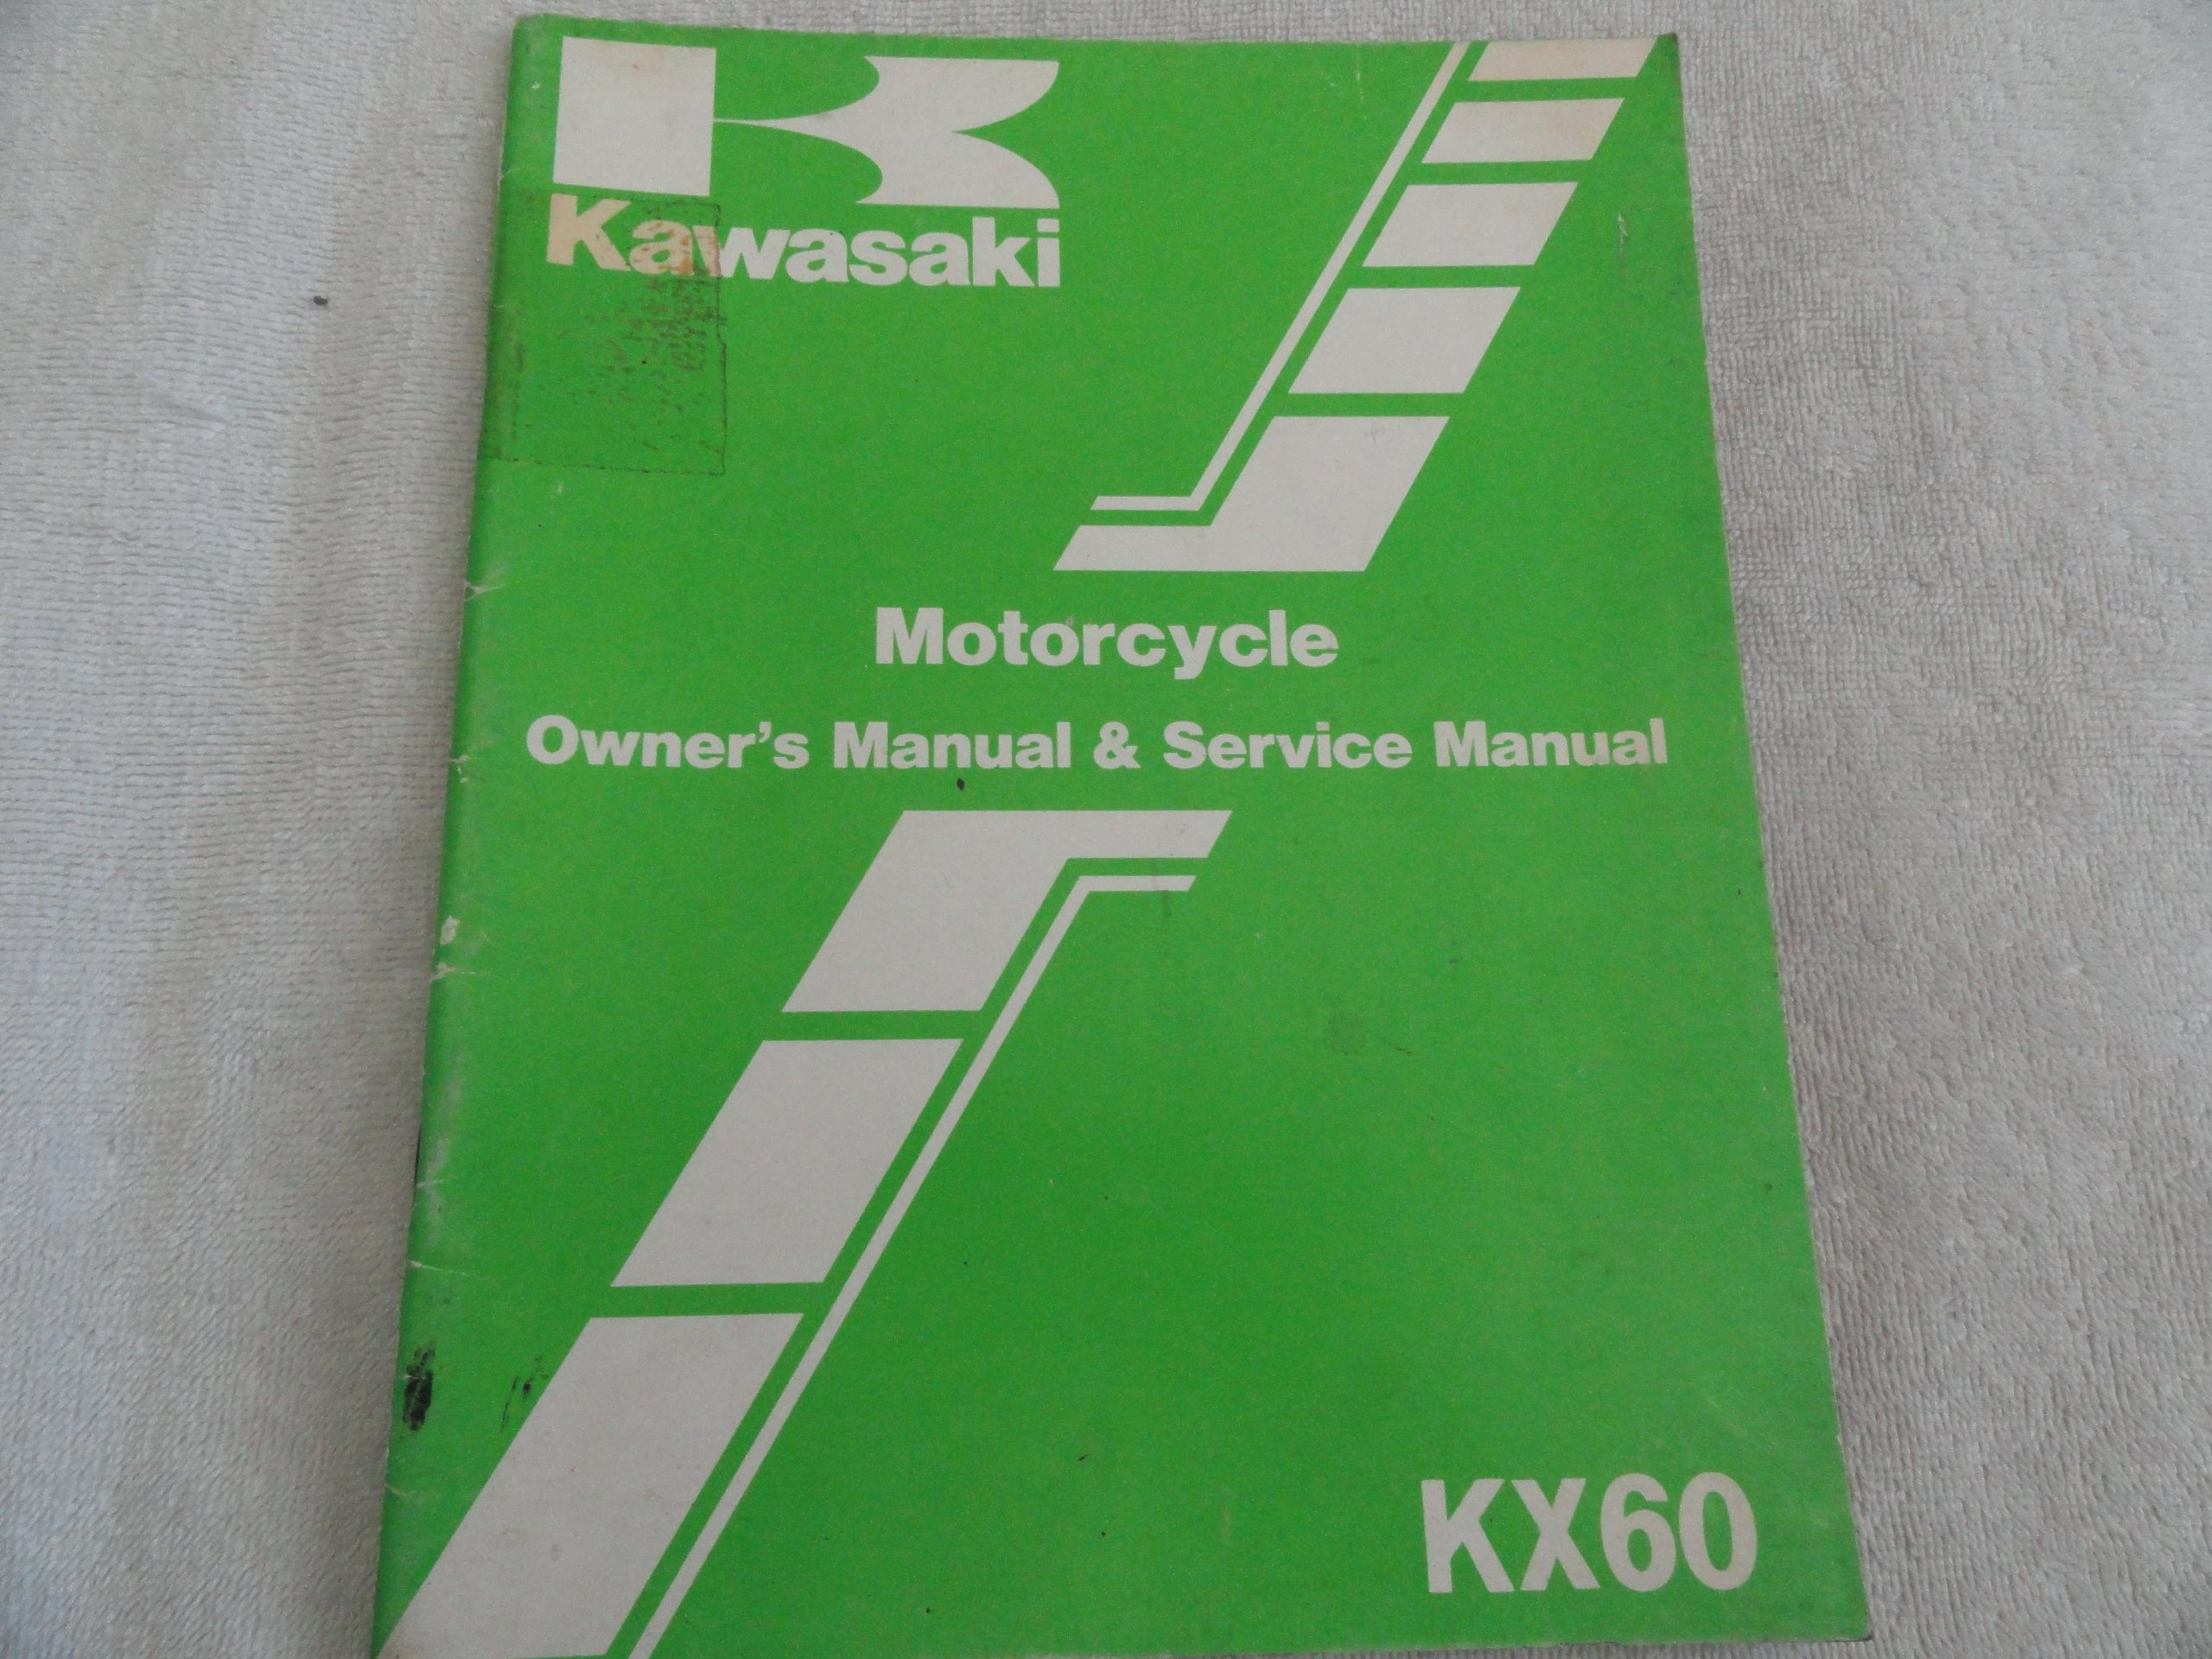 1983 1984 Kawasaki KX60 KX 60 Service Repair Manual: Kawasaki: Amazon.com:  Books